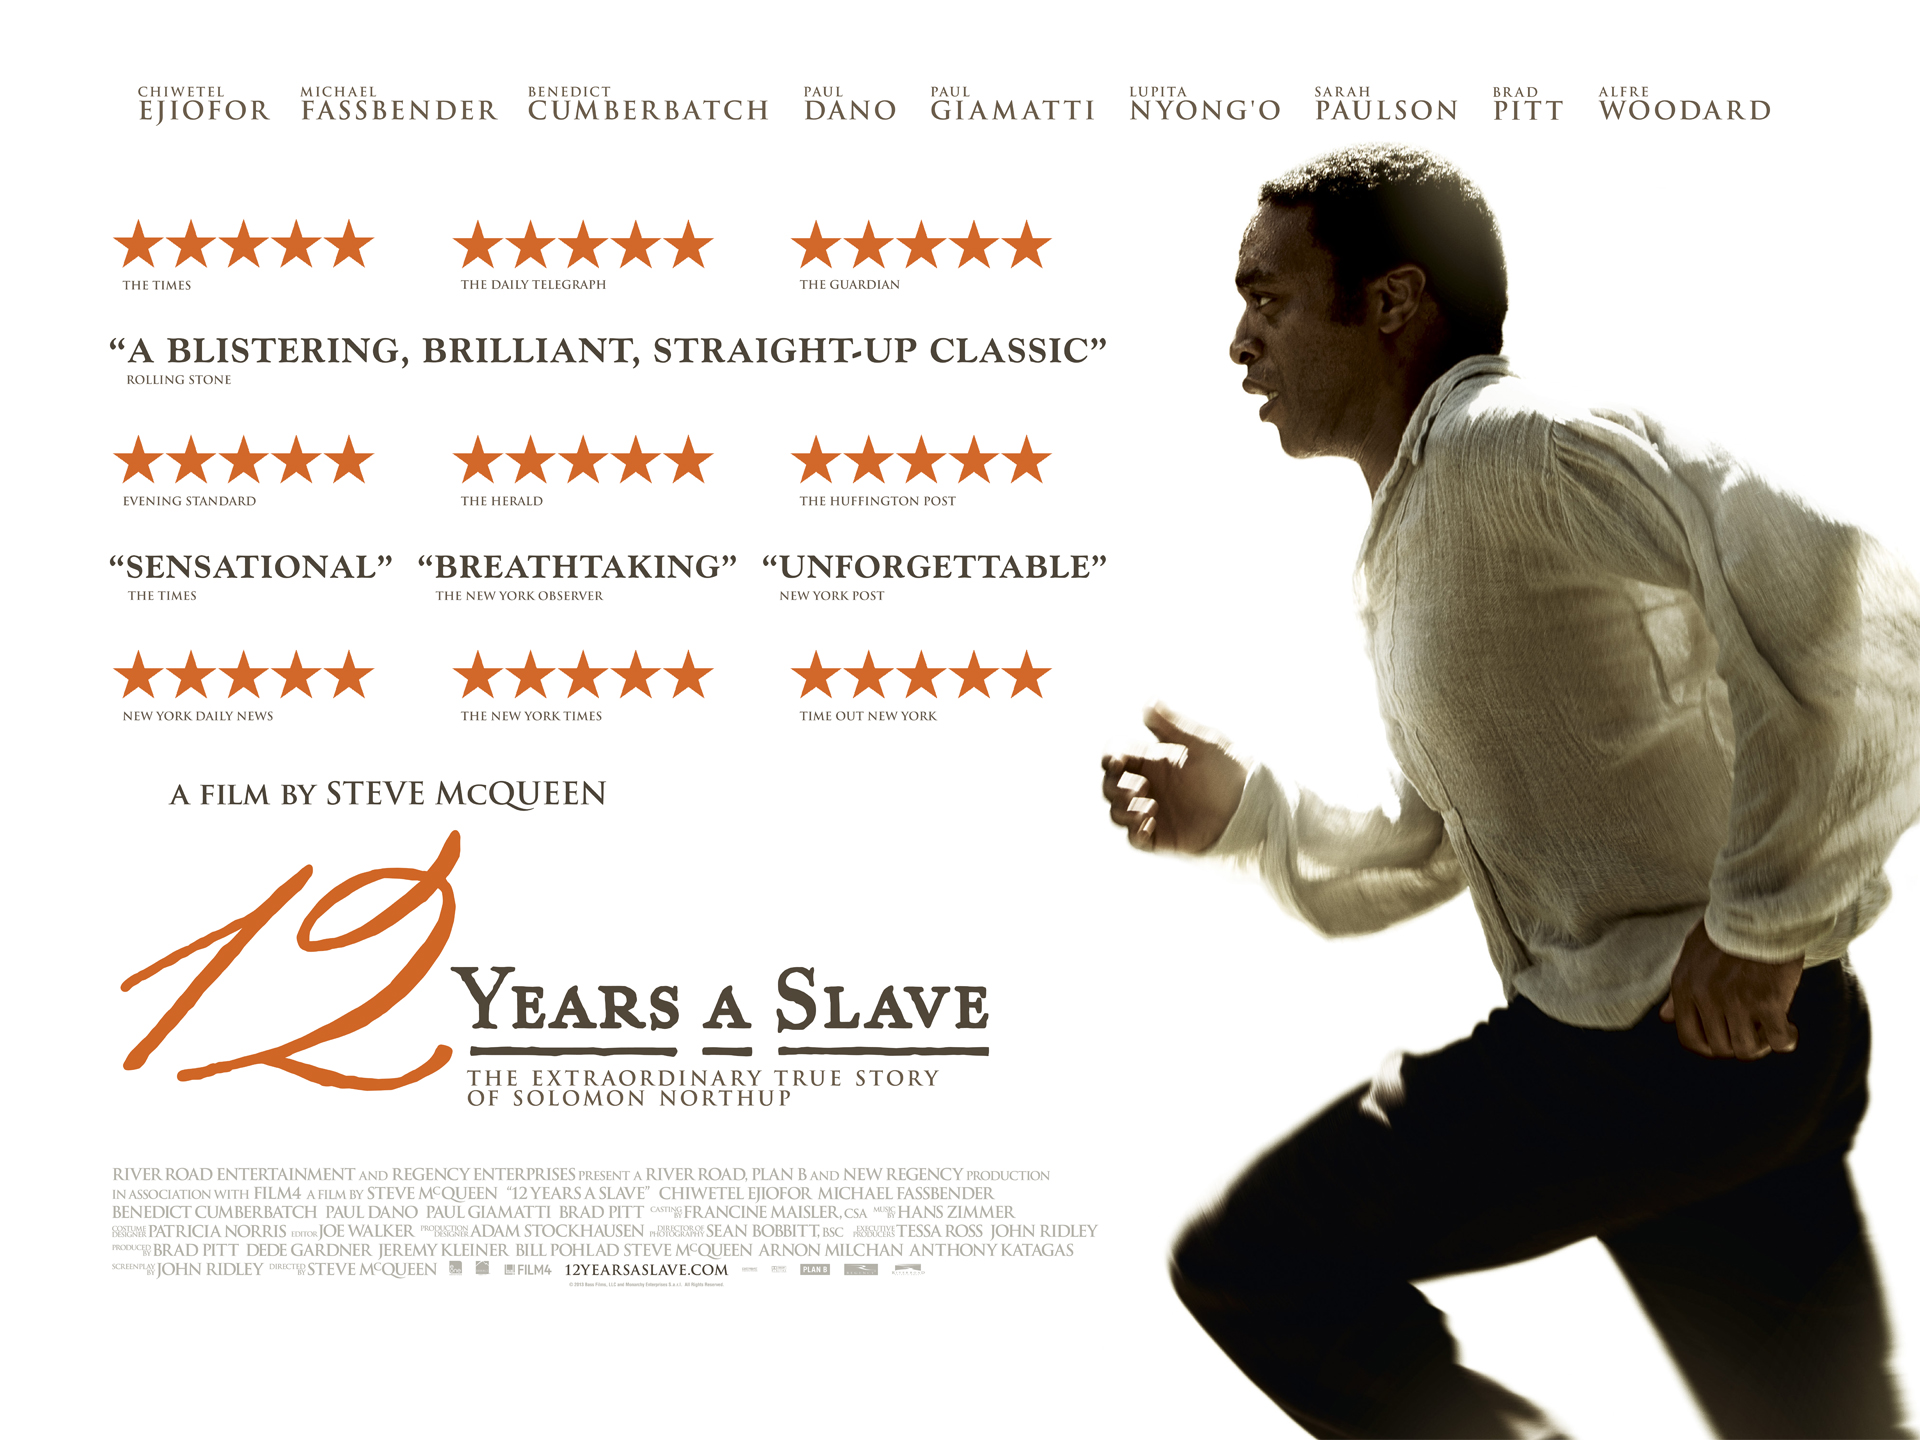 The film 12 years of slavery, 2013